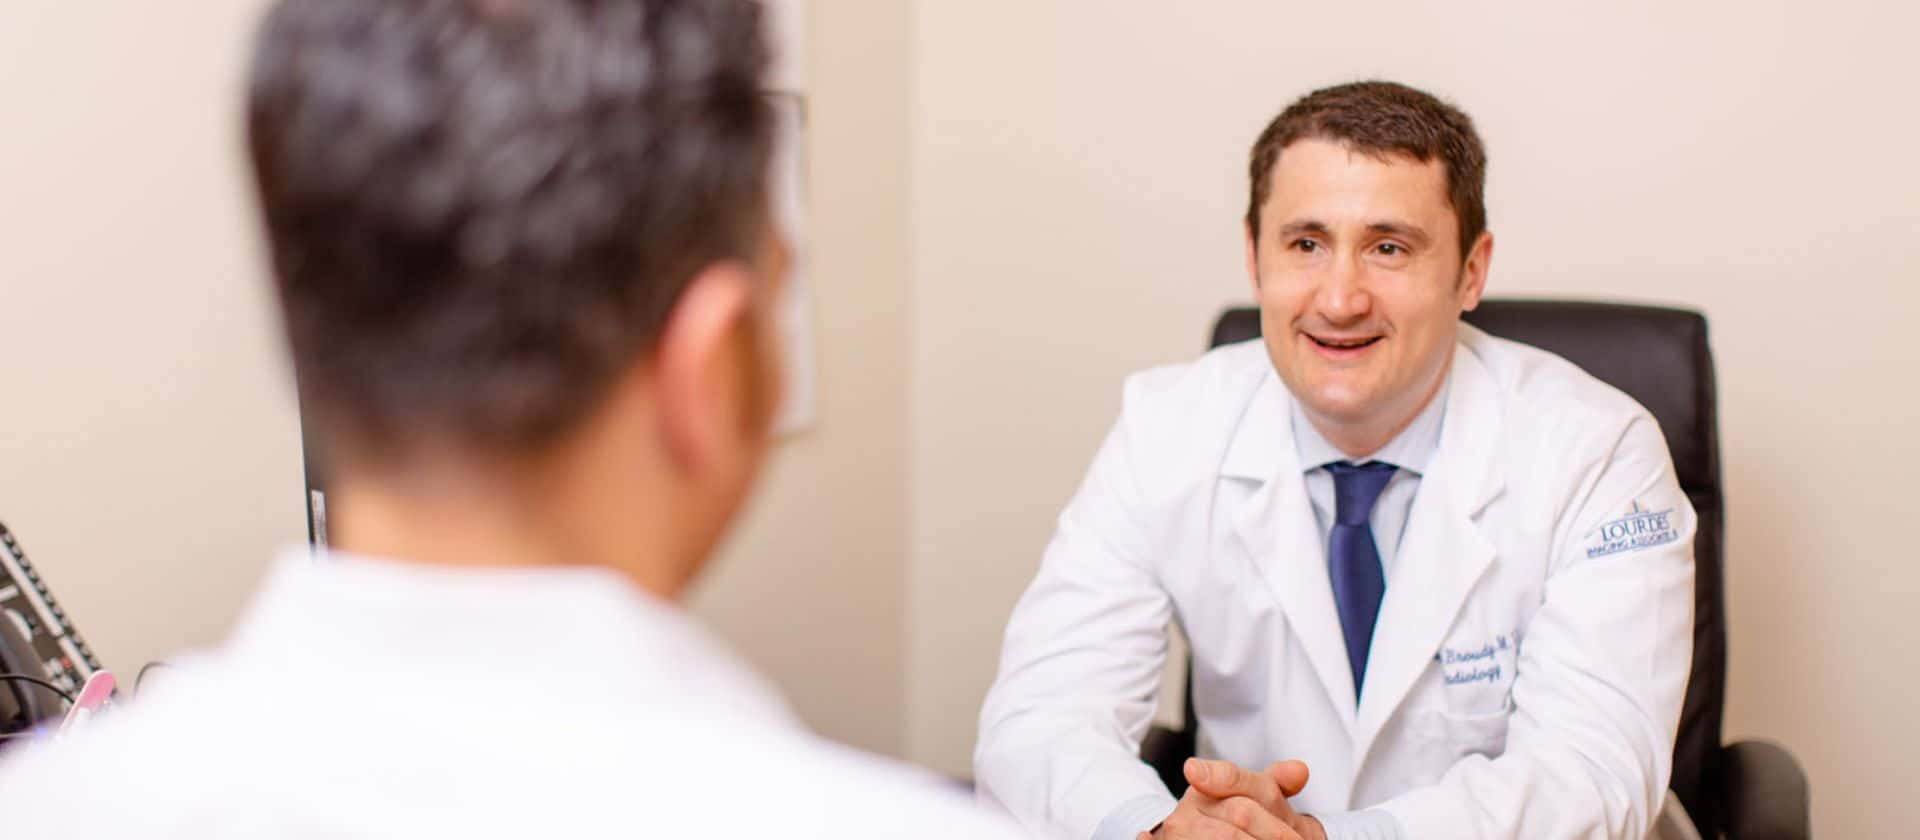 Doctor having a conversation with patient